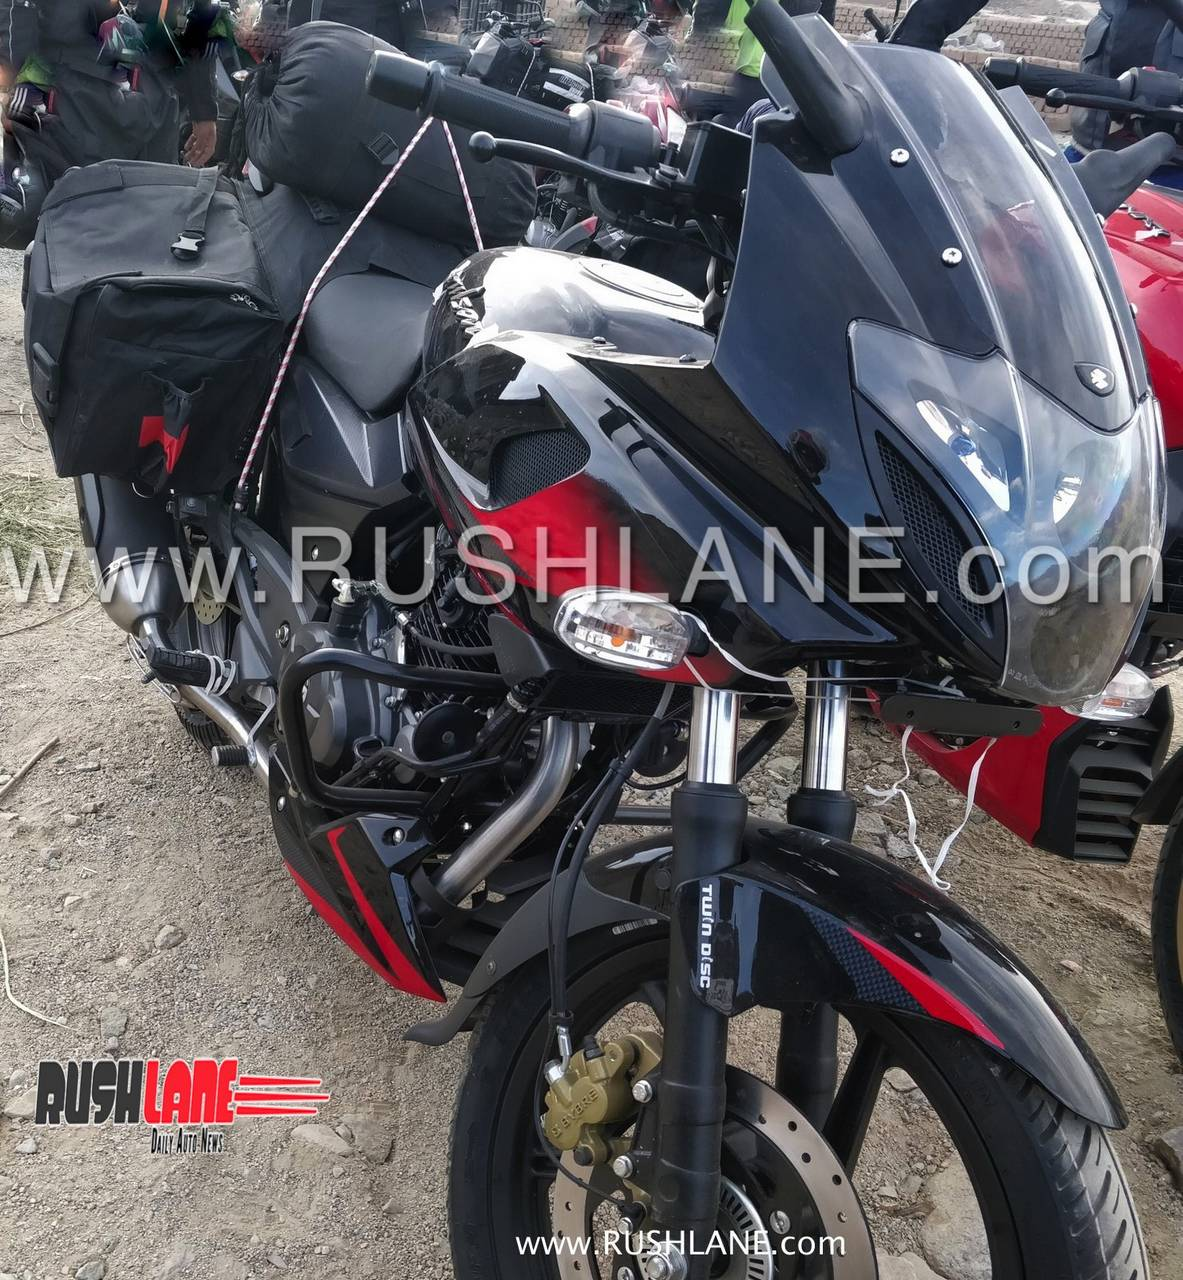 Bajajs long standing touring friendly pulsar the 220f has been spotted testing with abs apart from the safety feature the motorcycle also sports an